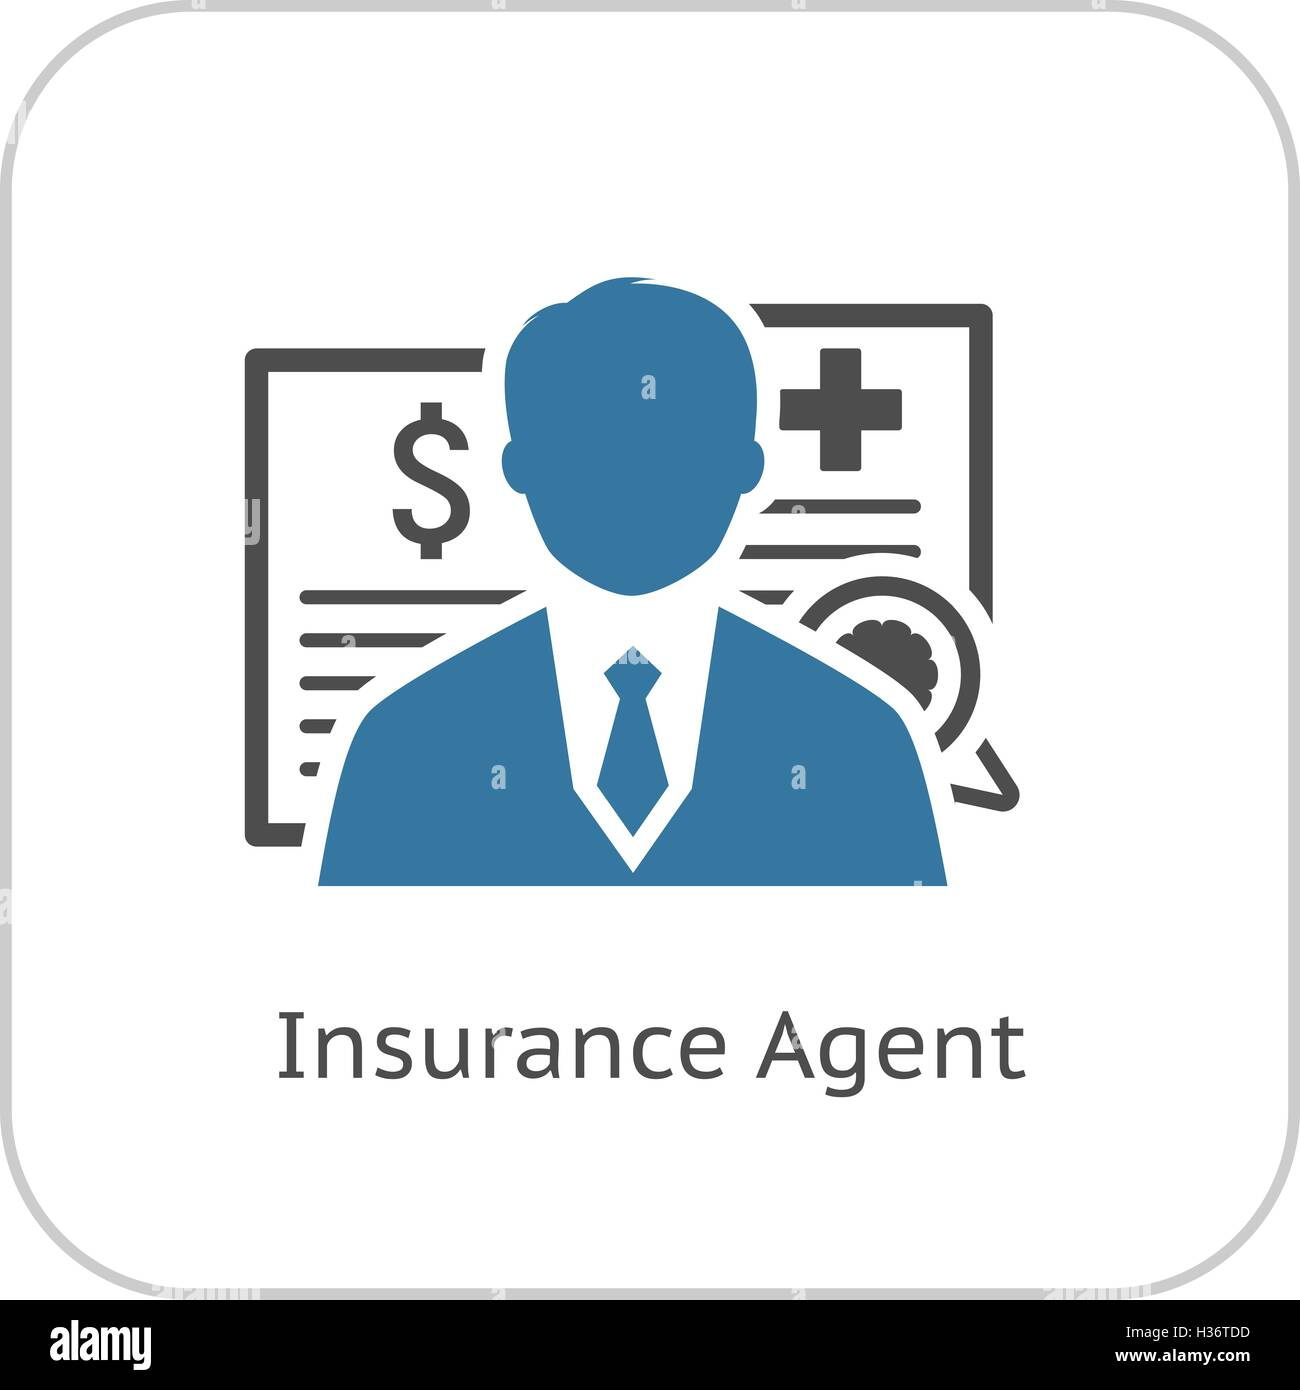 Insurance Agent Icon Flat Design Stock Vector Image Art Alamy